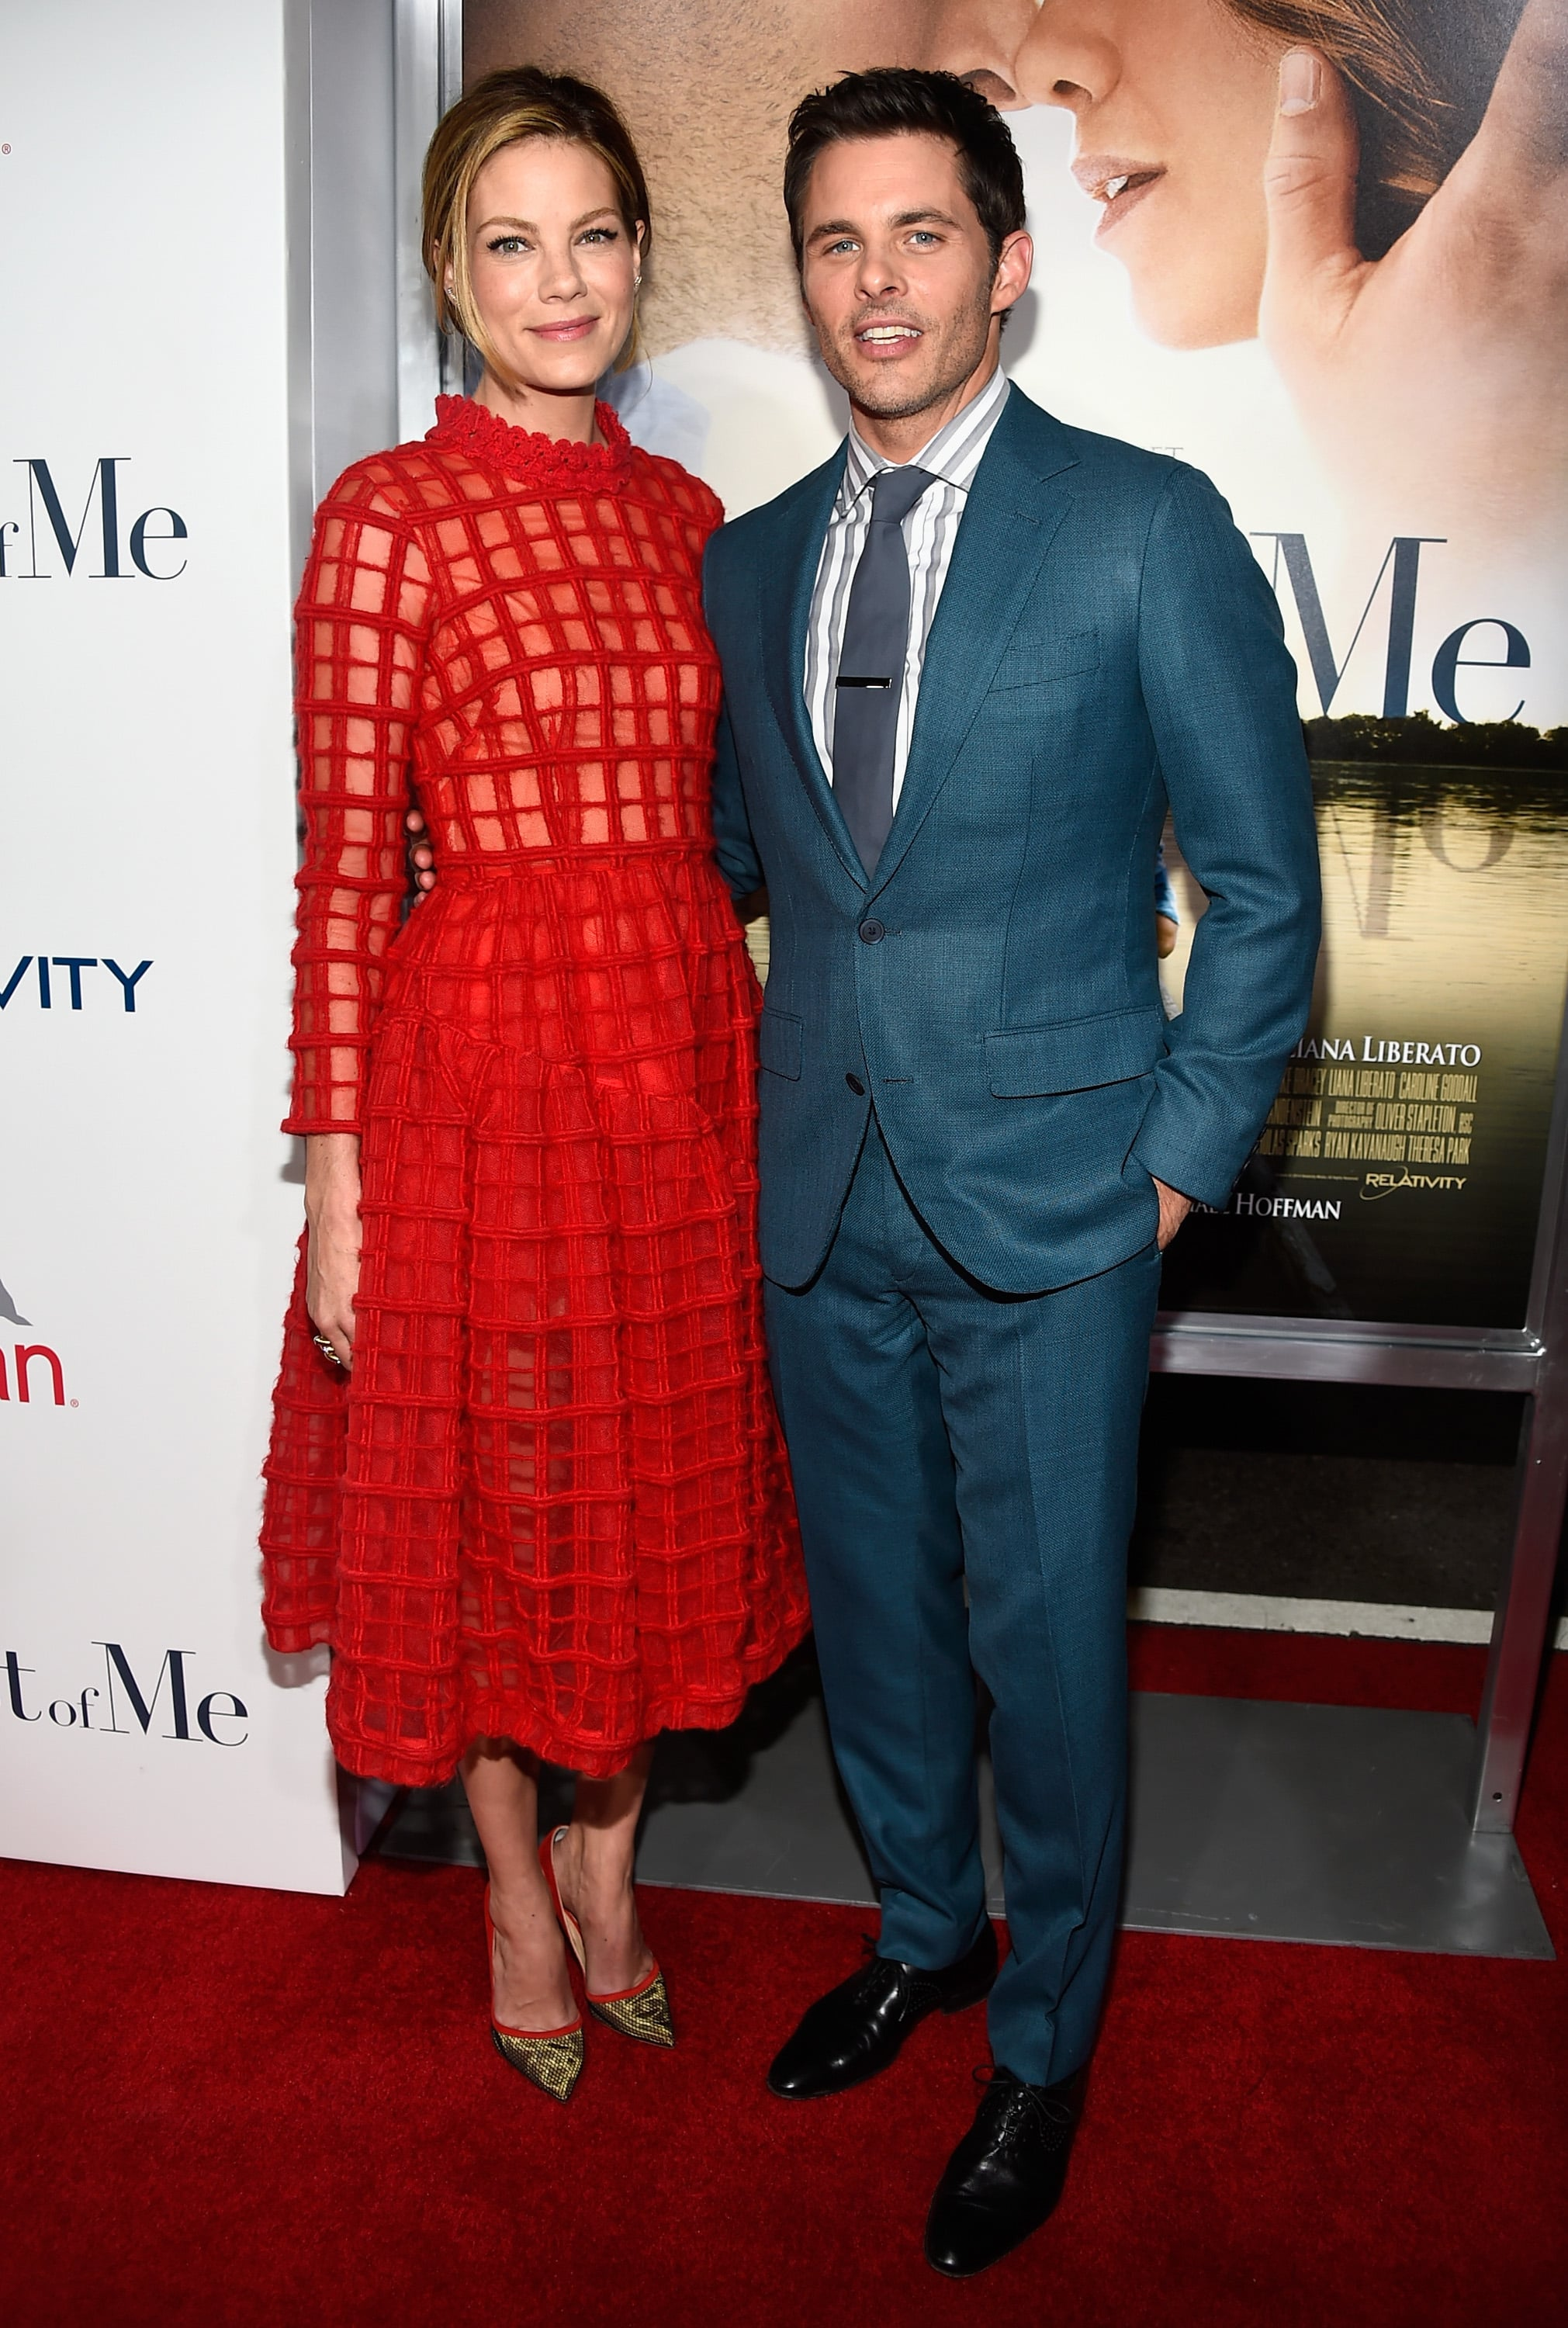 Michelle Monaghan and james marsden